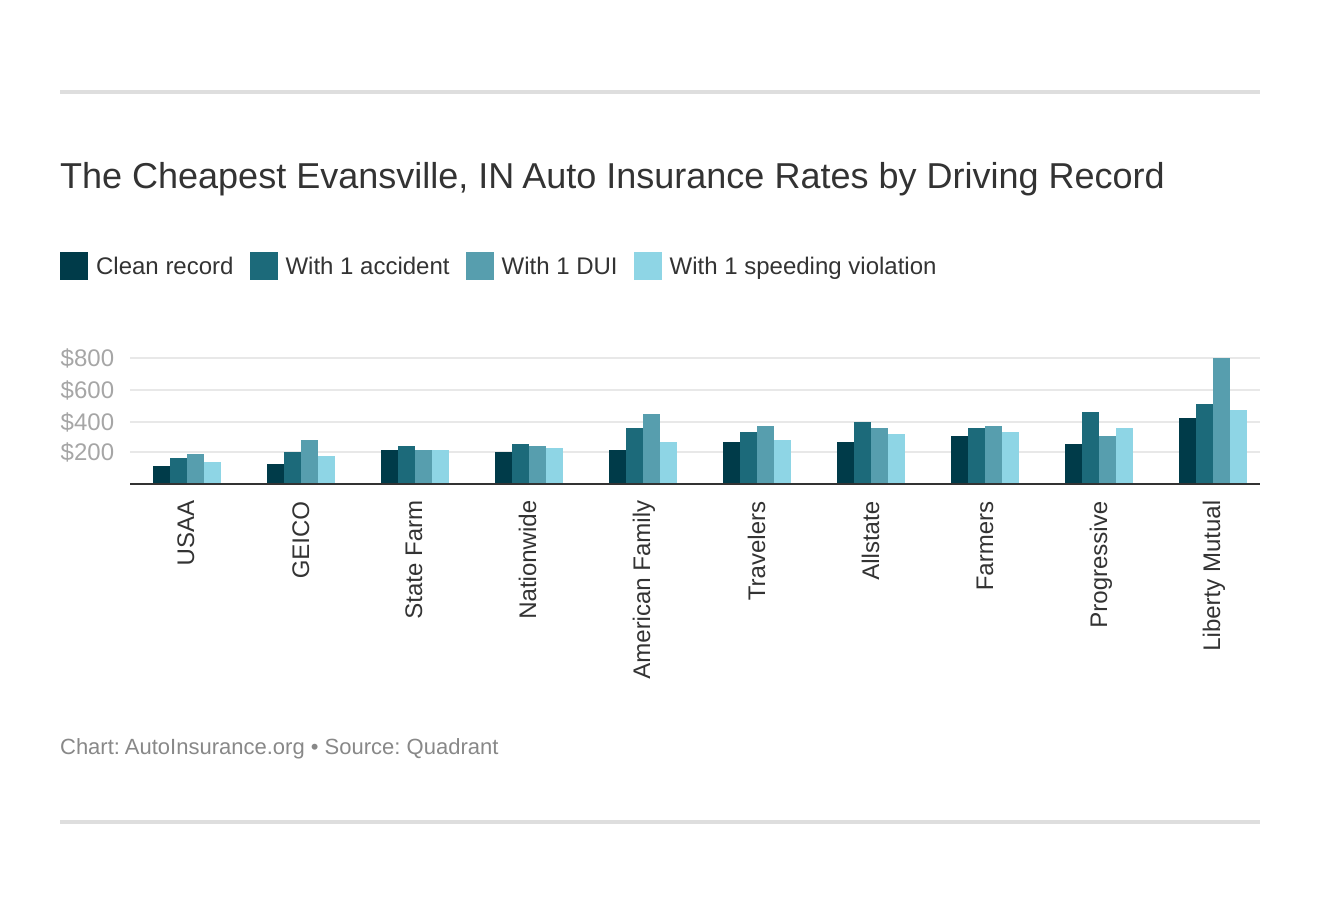 The Cheapest Evansville, IN Auto Insurance Rates by Driving Record